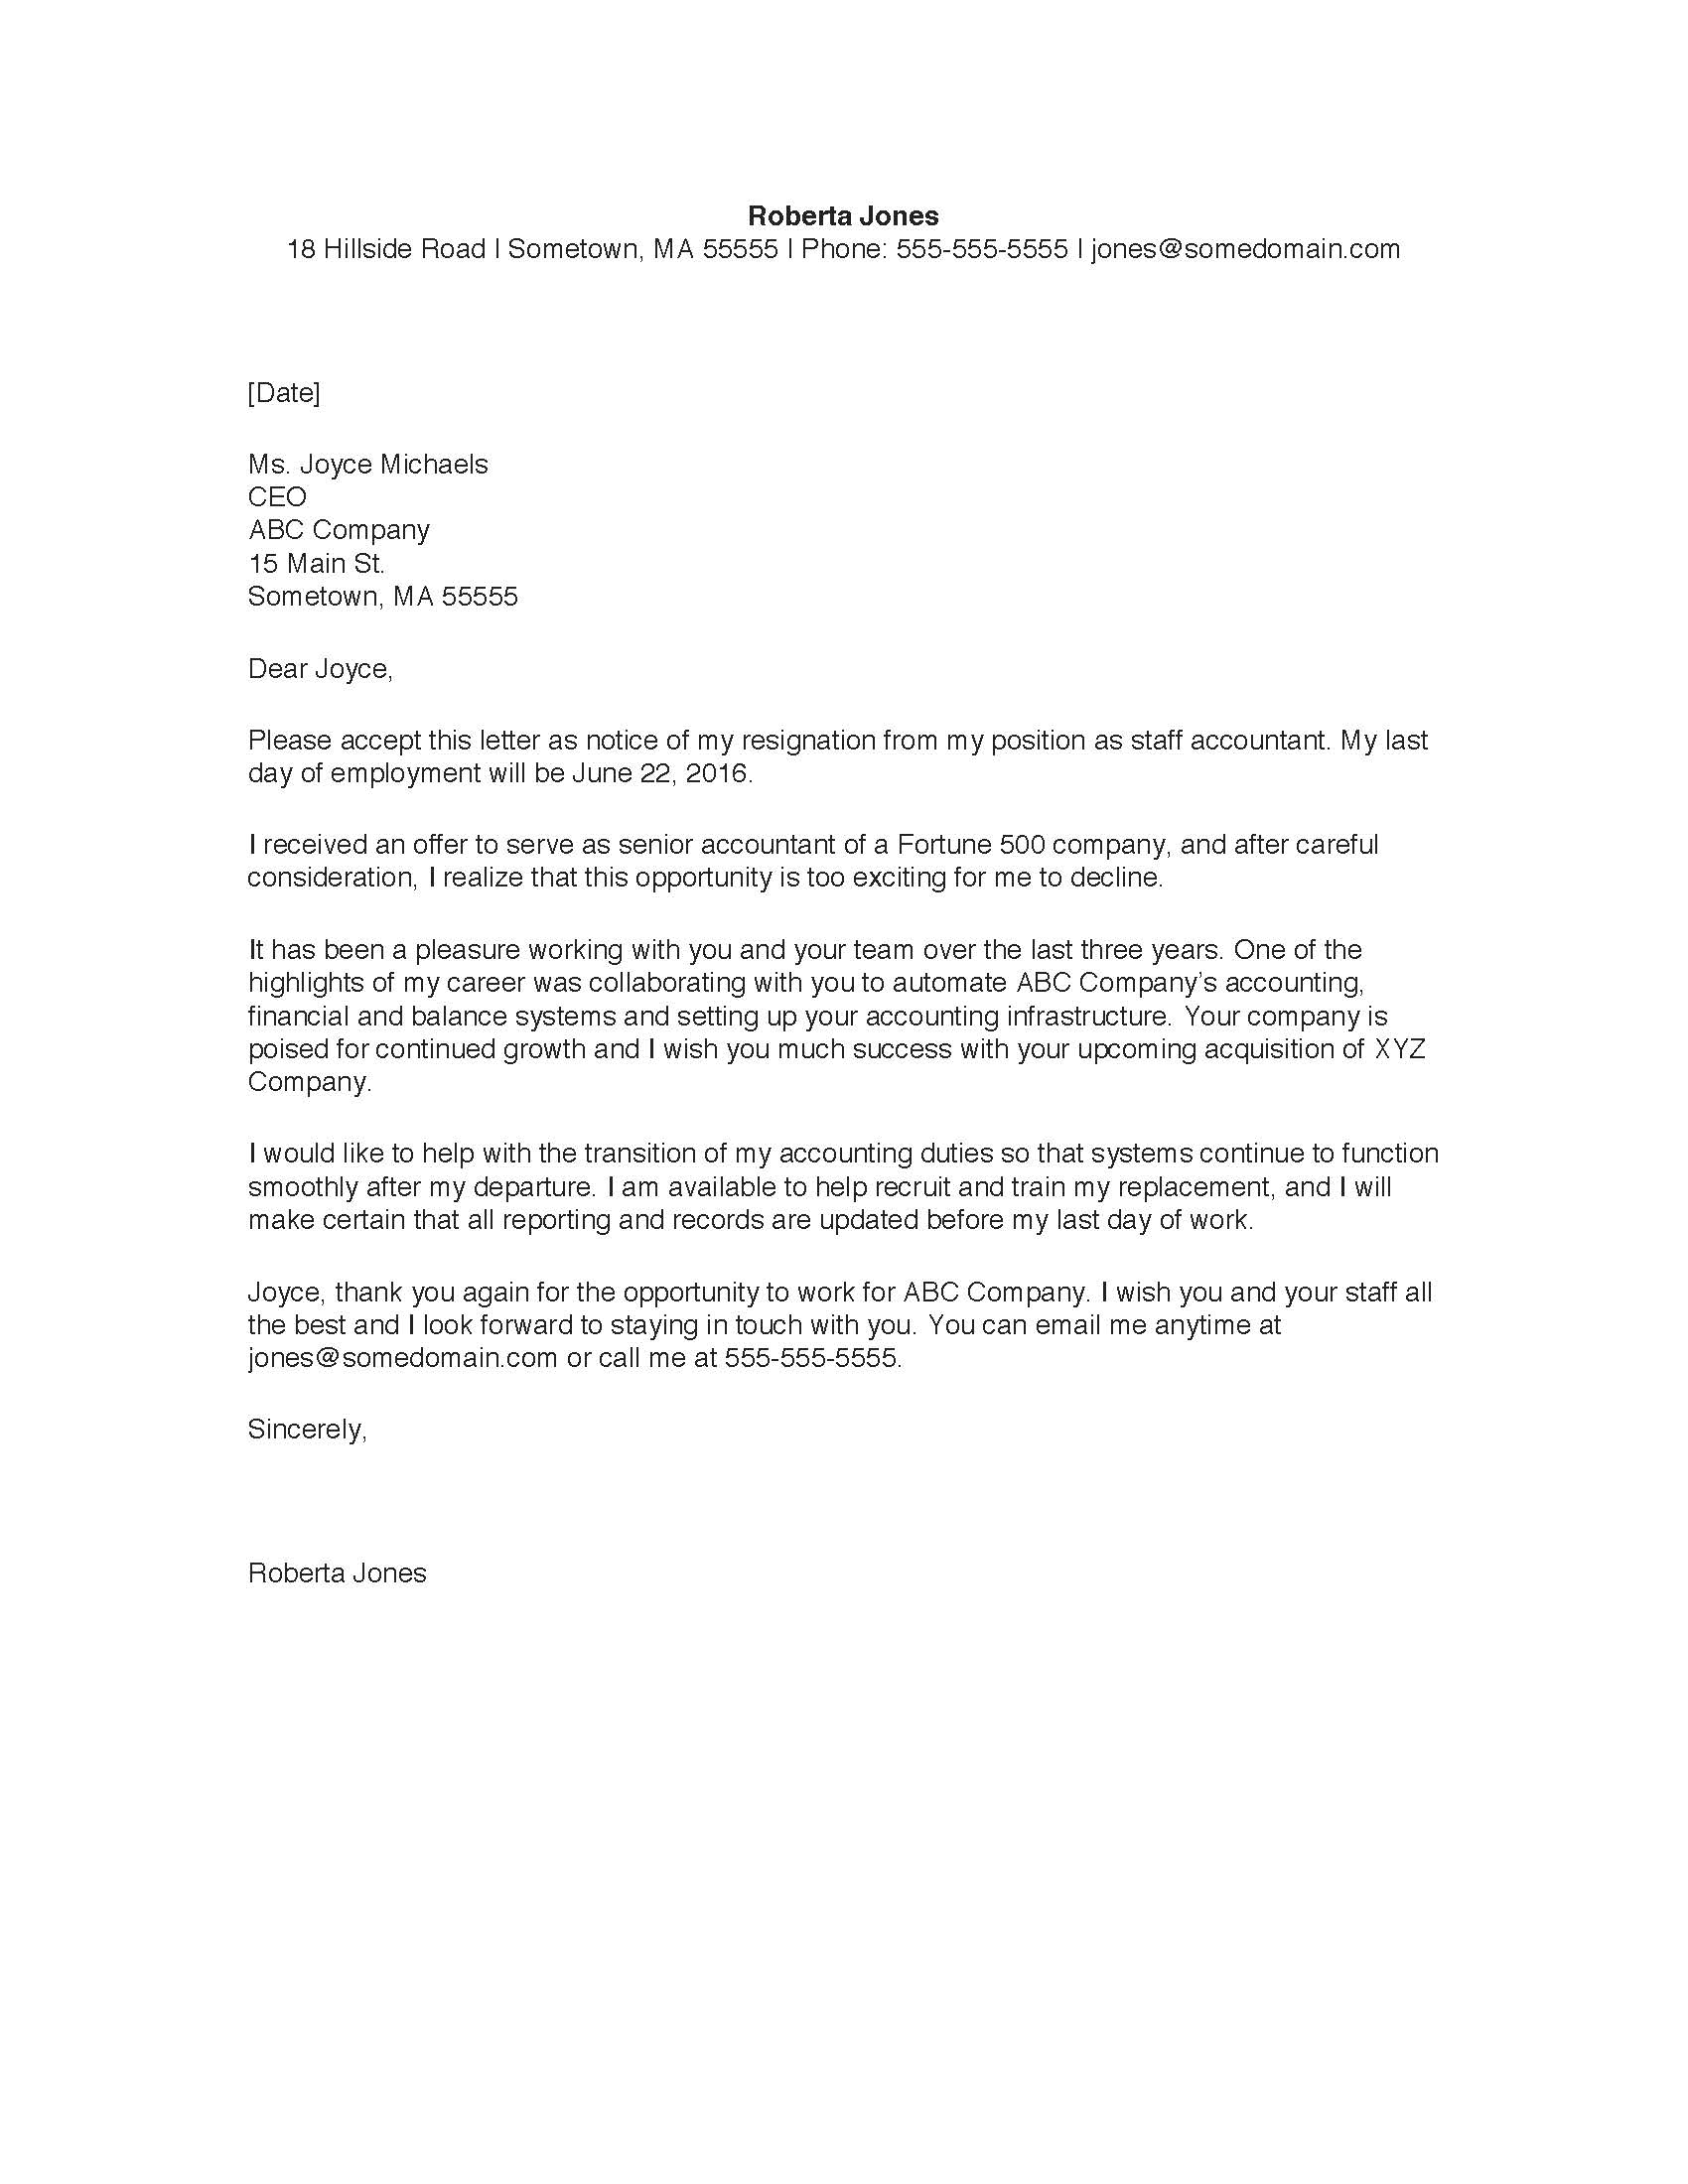 Sample resignation letter monster sample resignation letter thecheapjerseys Image collections